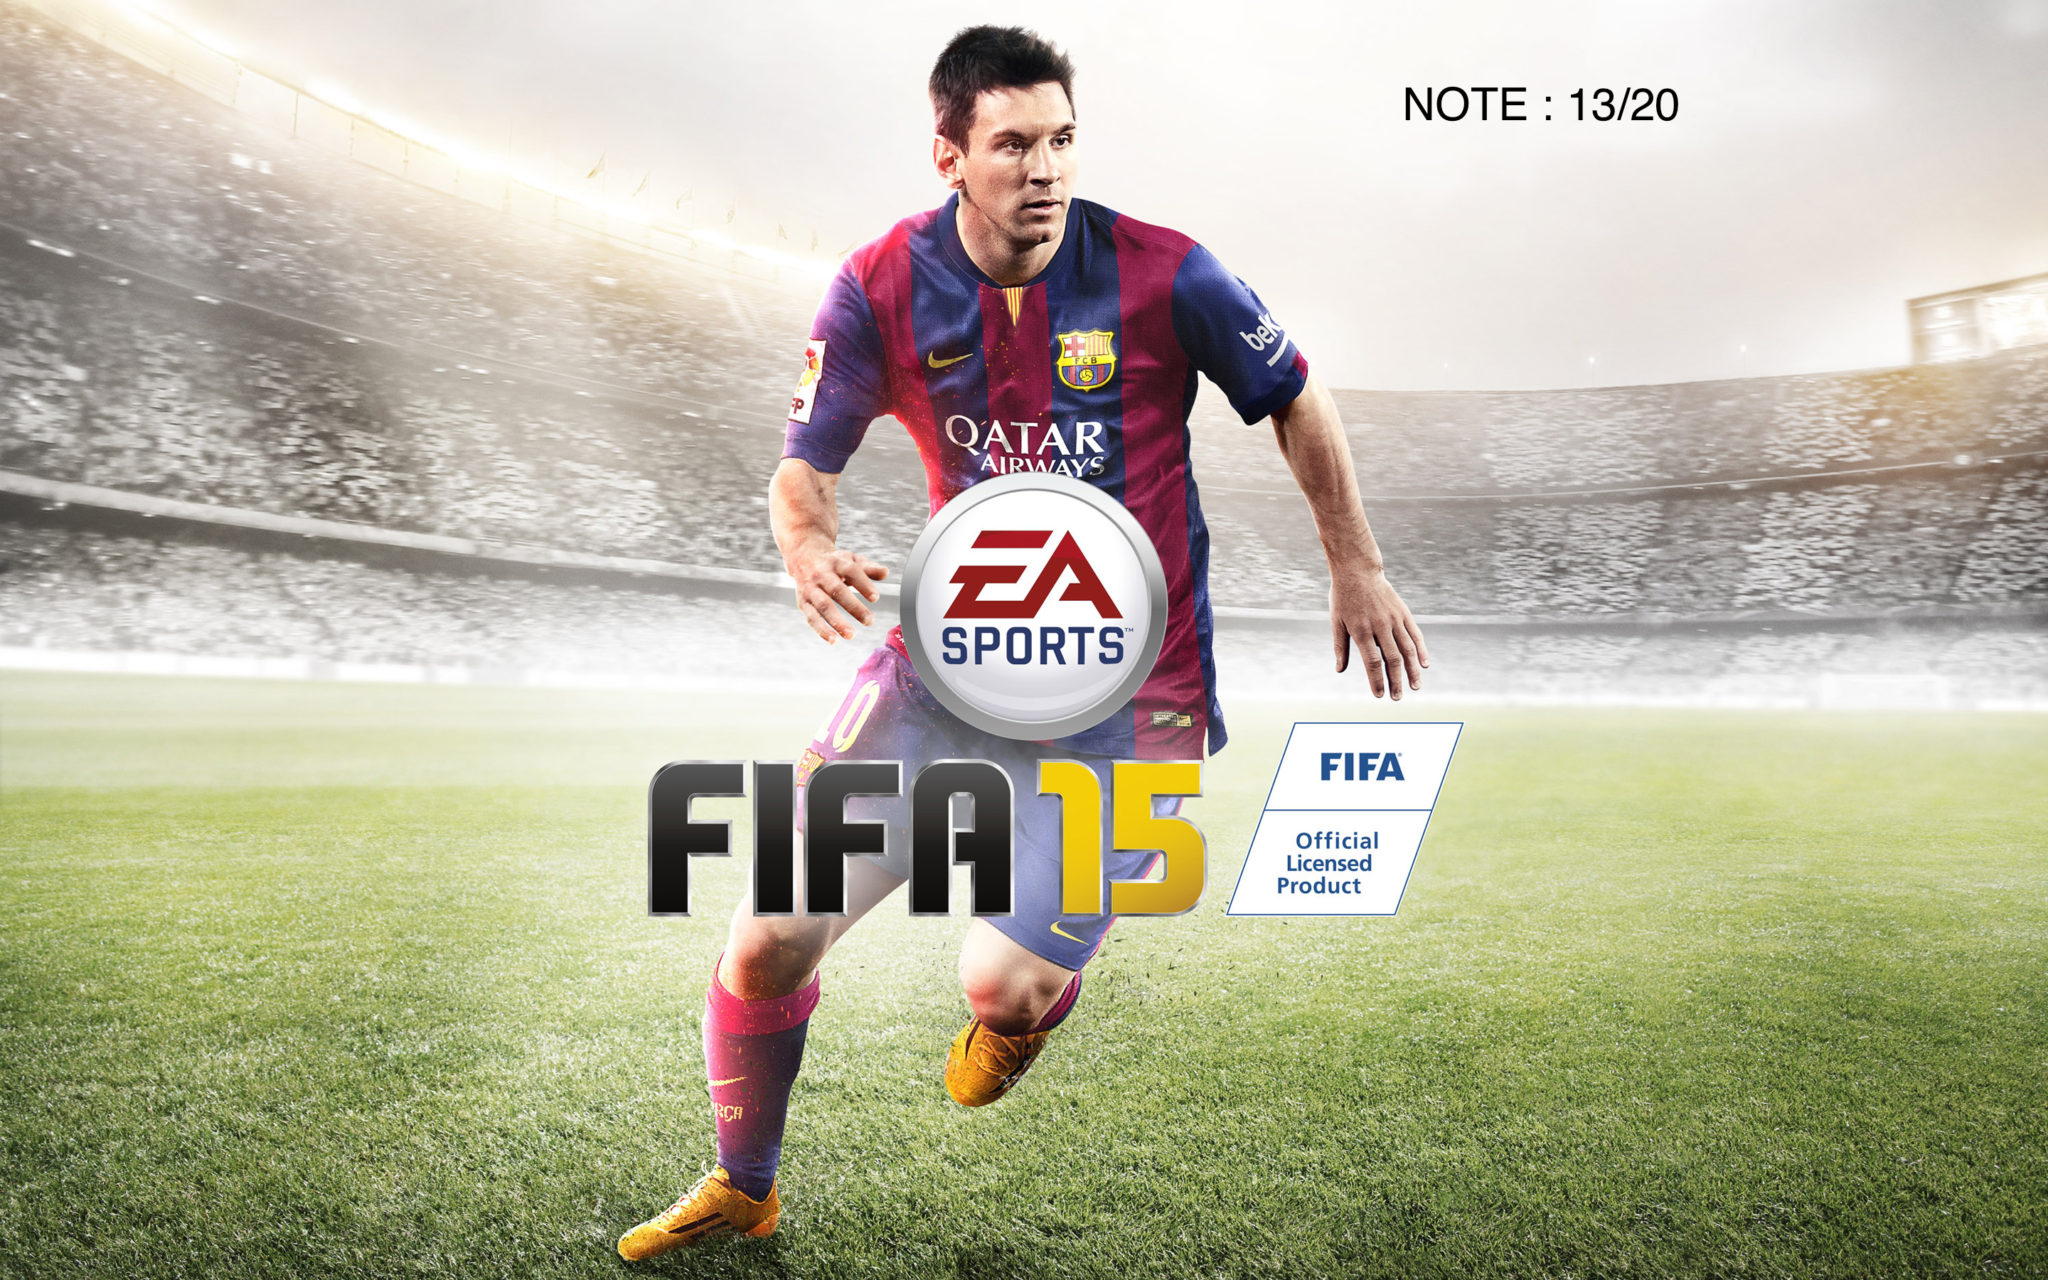 fifa_15-note